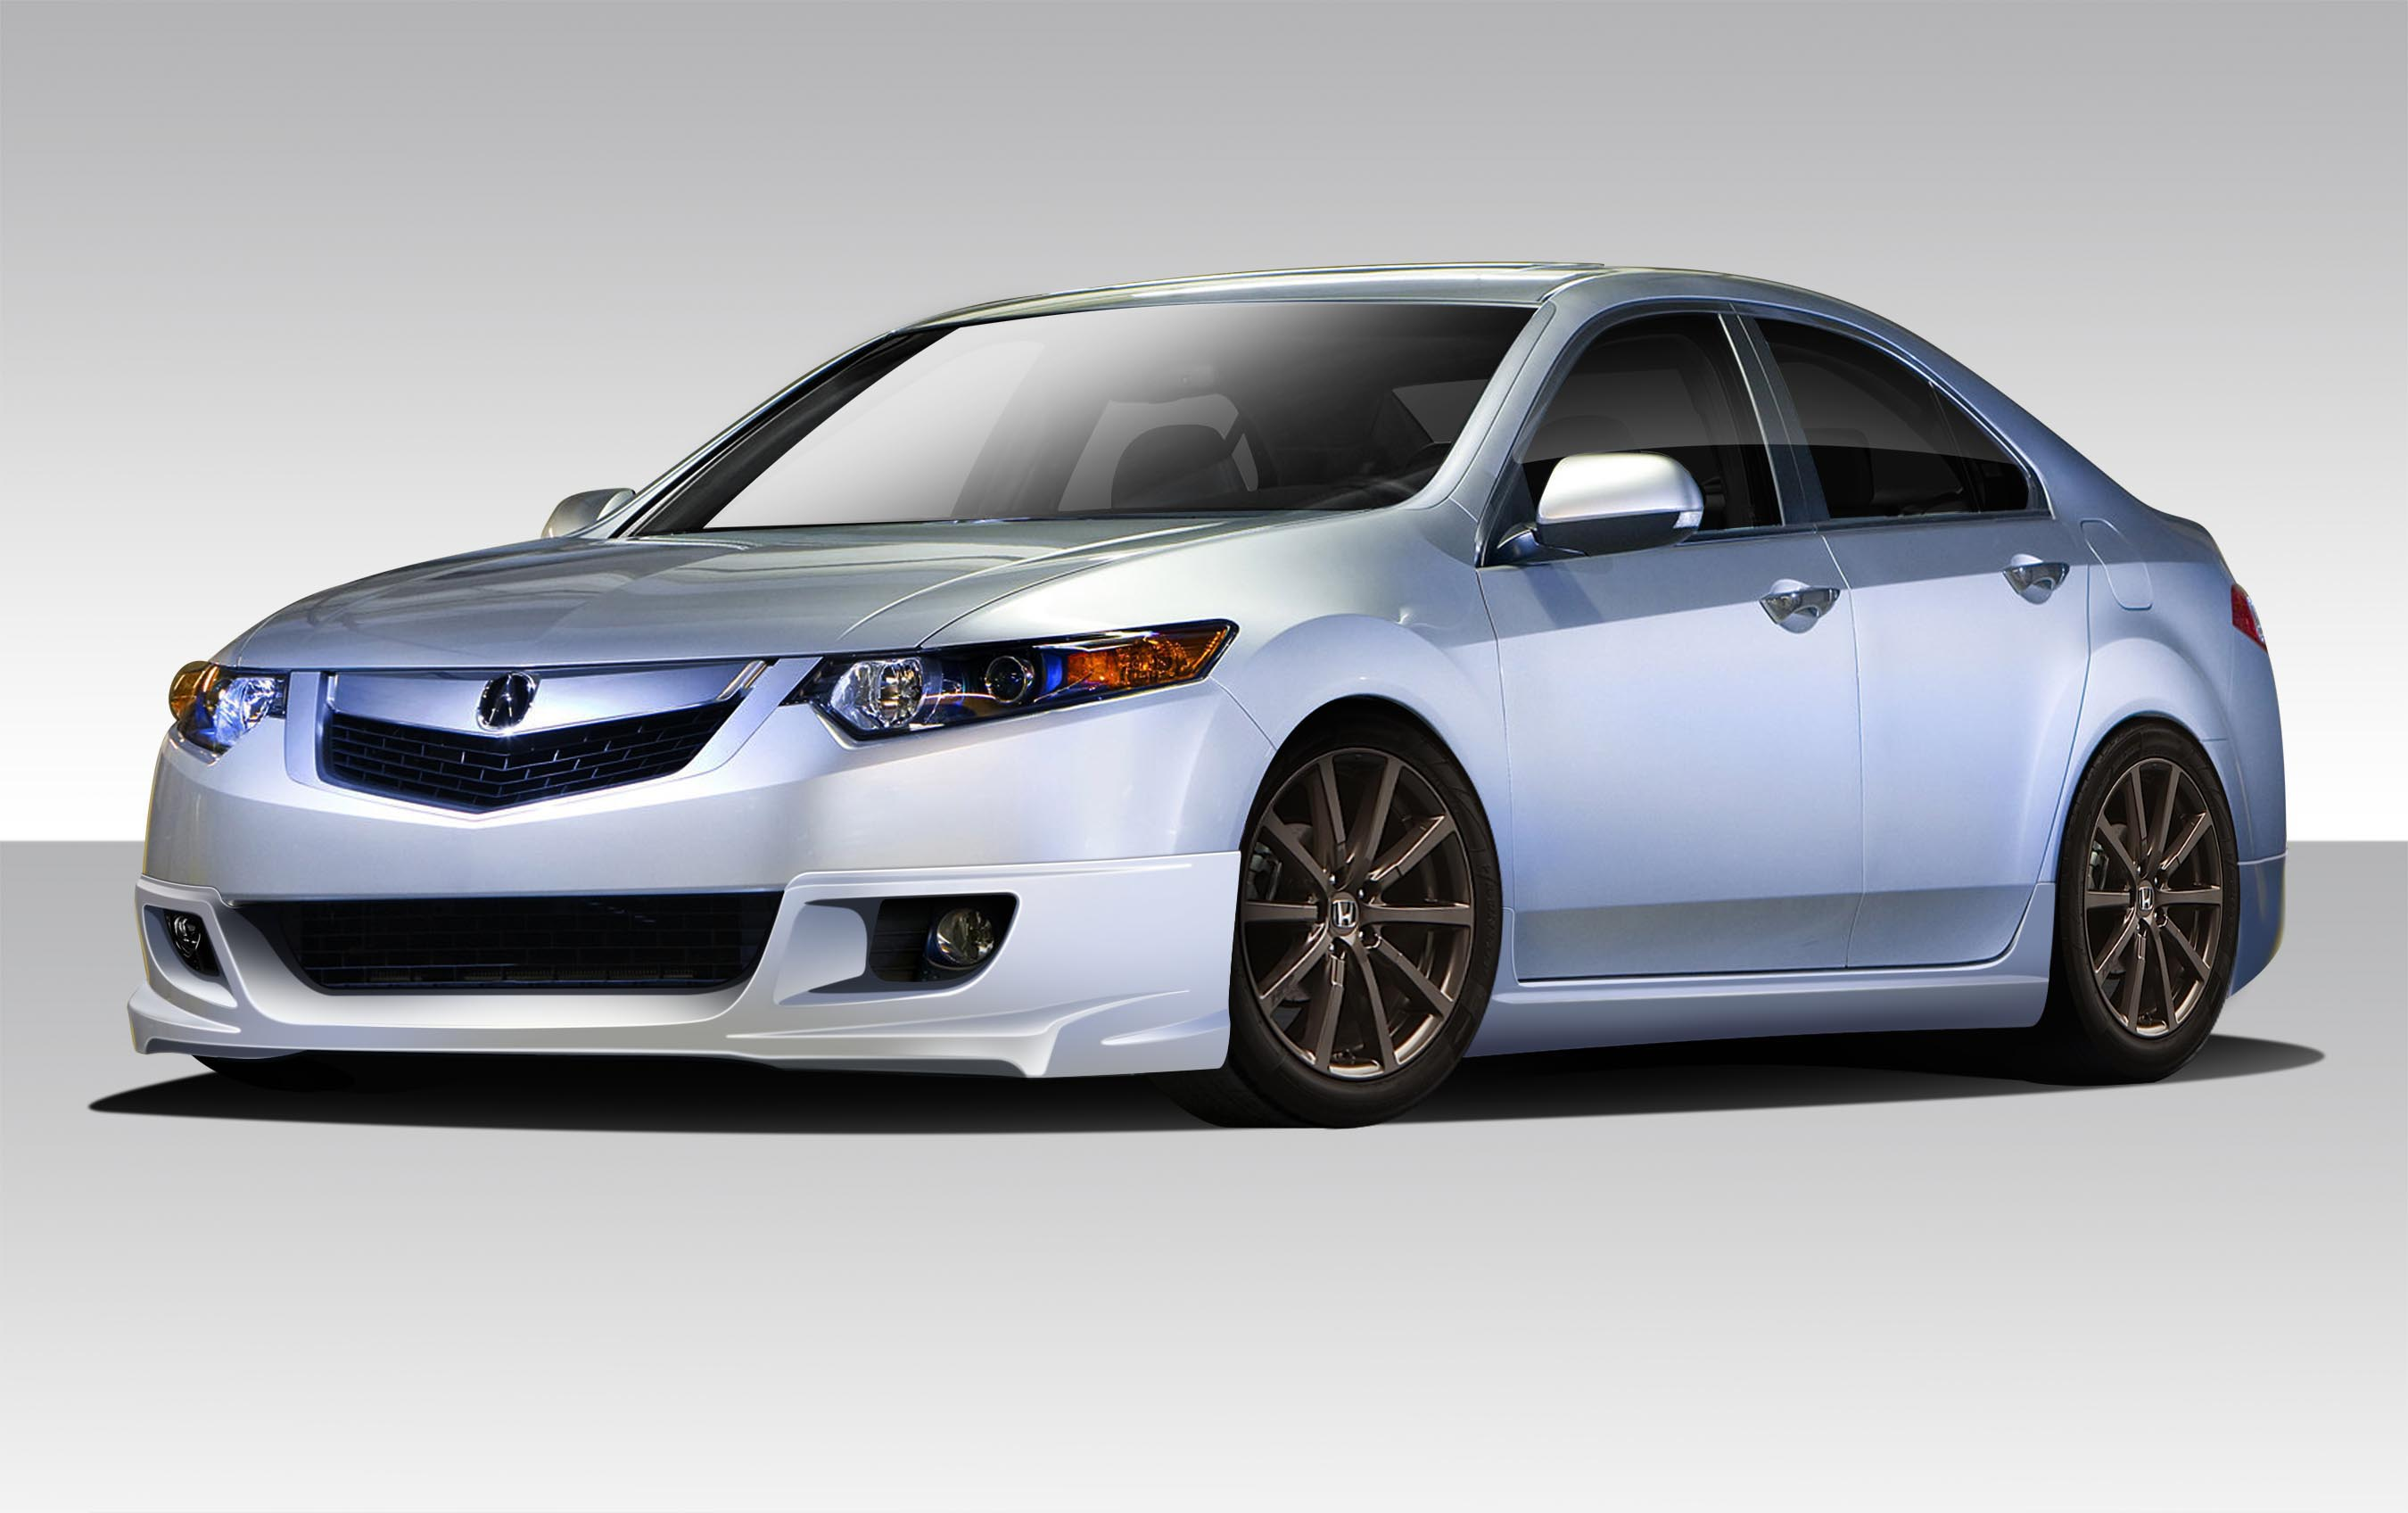 welcome to extreme dimensions item group 2009 2010 acura tsx duraflex type m body kit 4. Black Bedroom Furniture Sets. Home Design Ideas